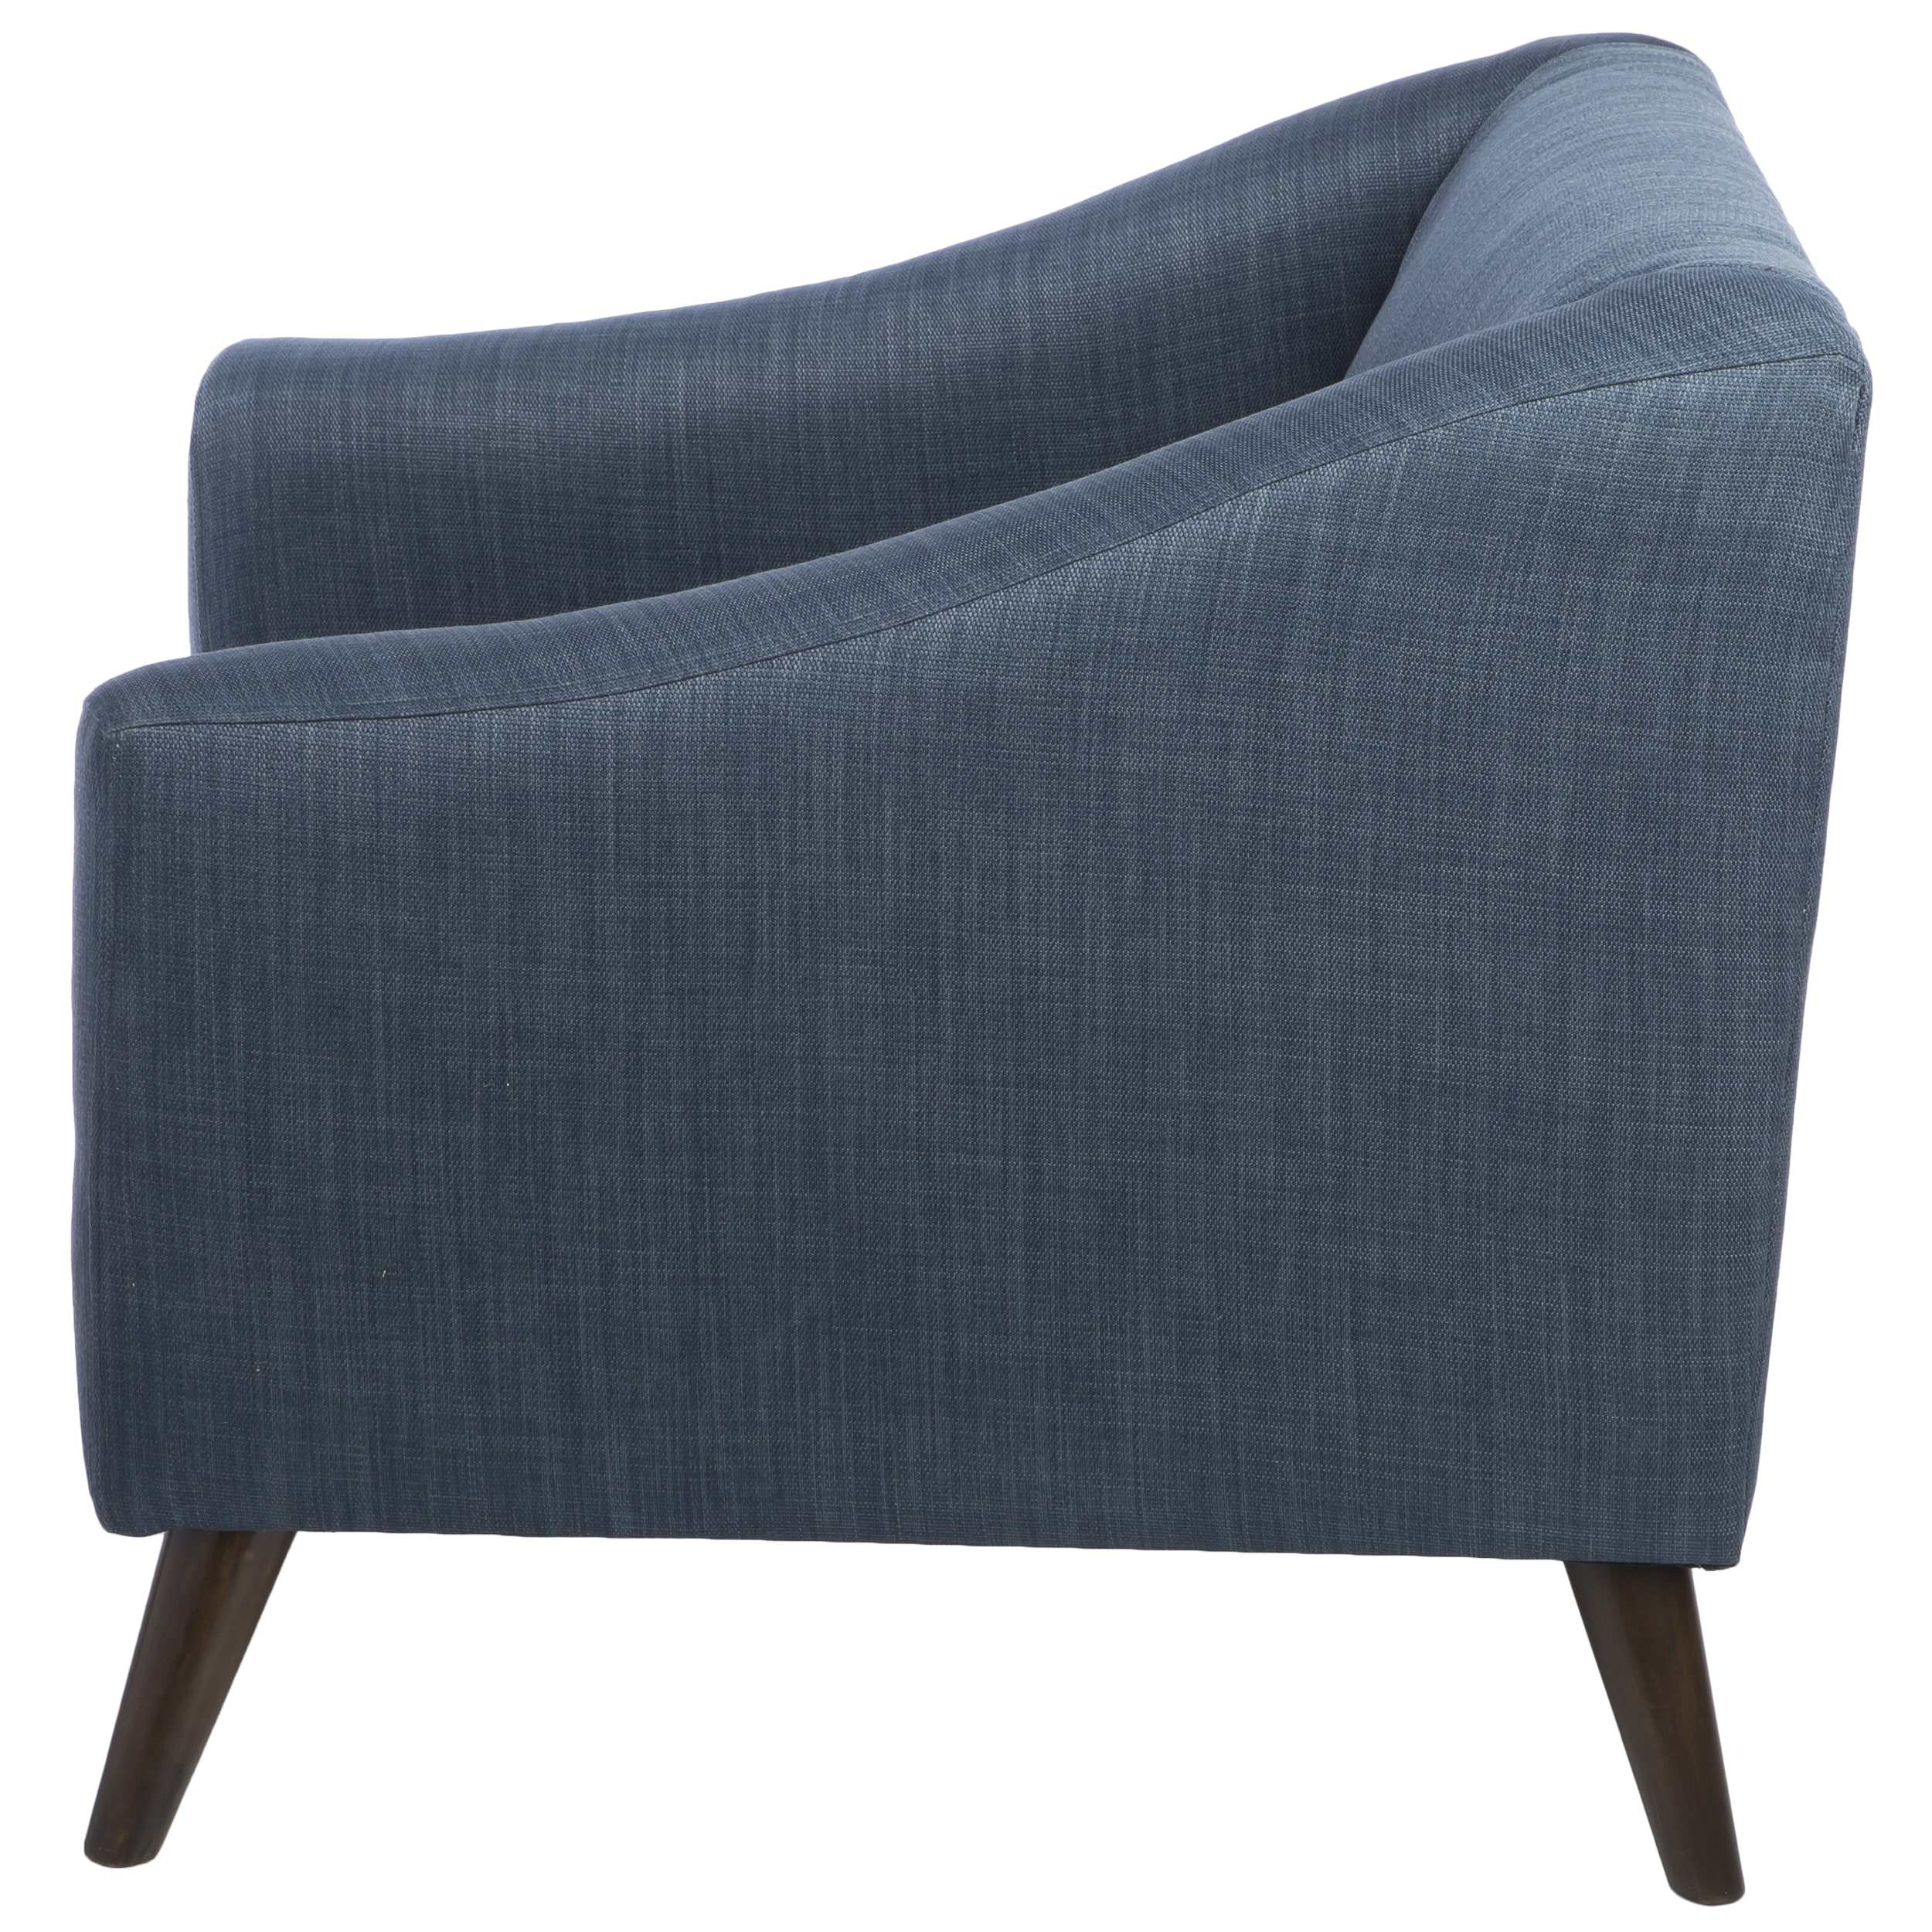 Carson Carrington Quincy Blue Linen Upholstered Arm Chair   Free Shipping  Today   Overstock   16061897